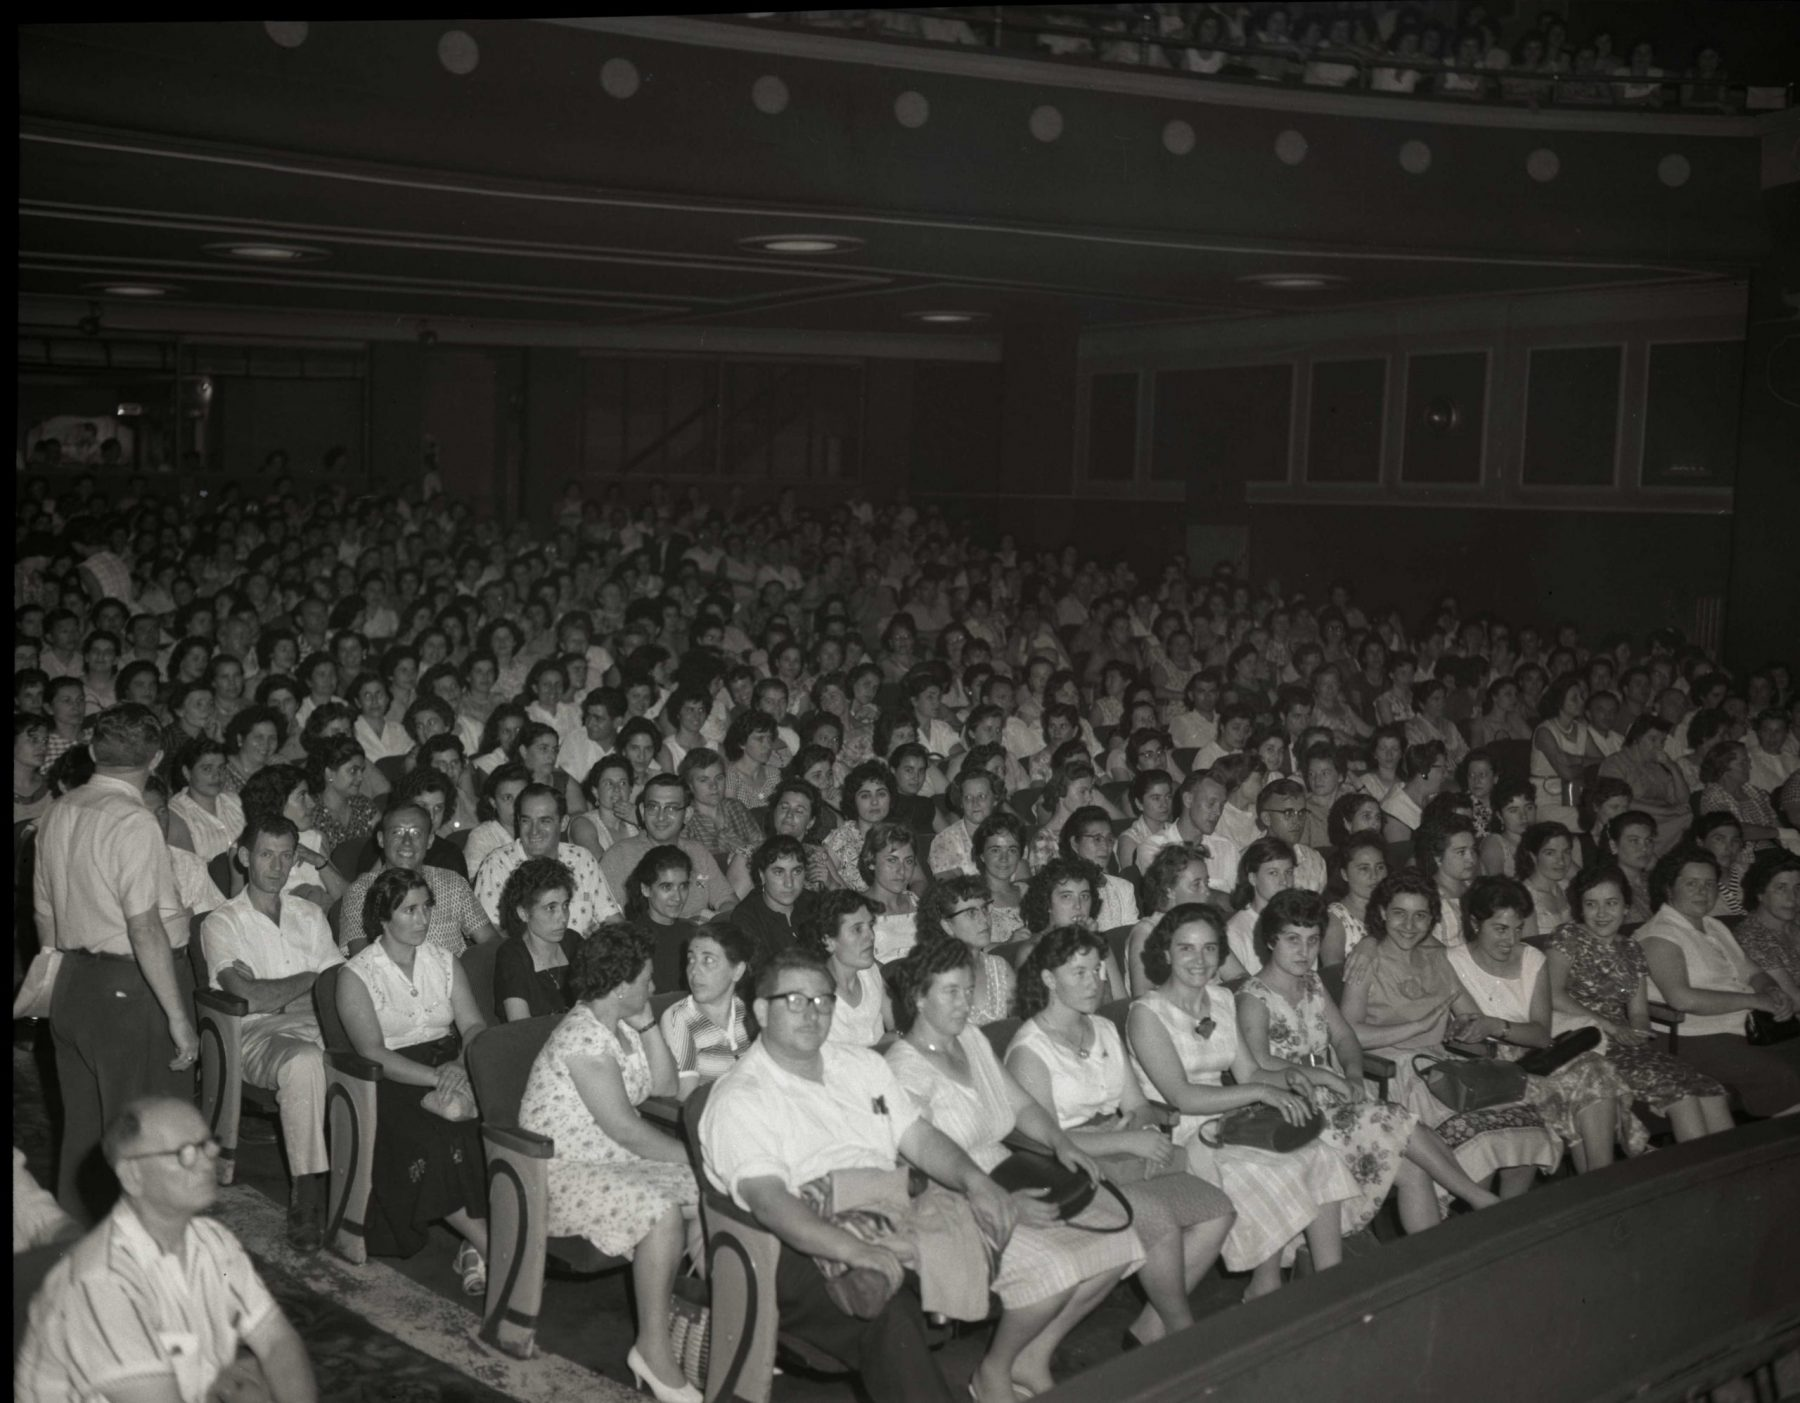 Garment workers in the Victory Theatre for the Cloakmakers' Union rally in September 1960.    OJA fonds 18, series 3, file 53, item 9.